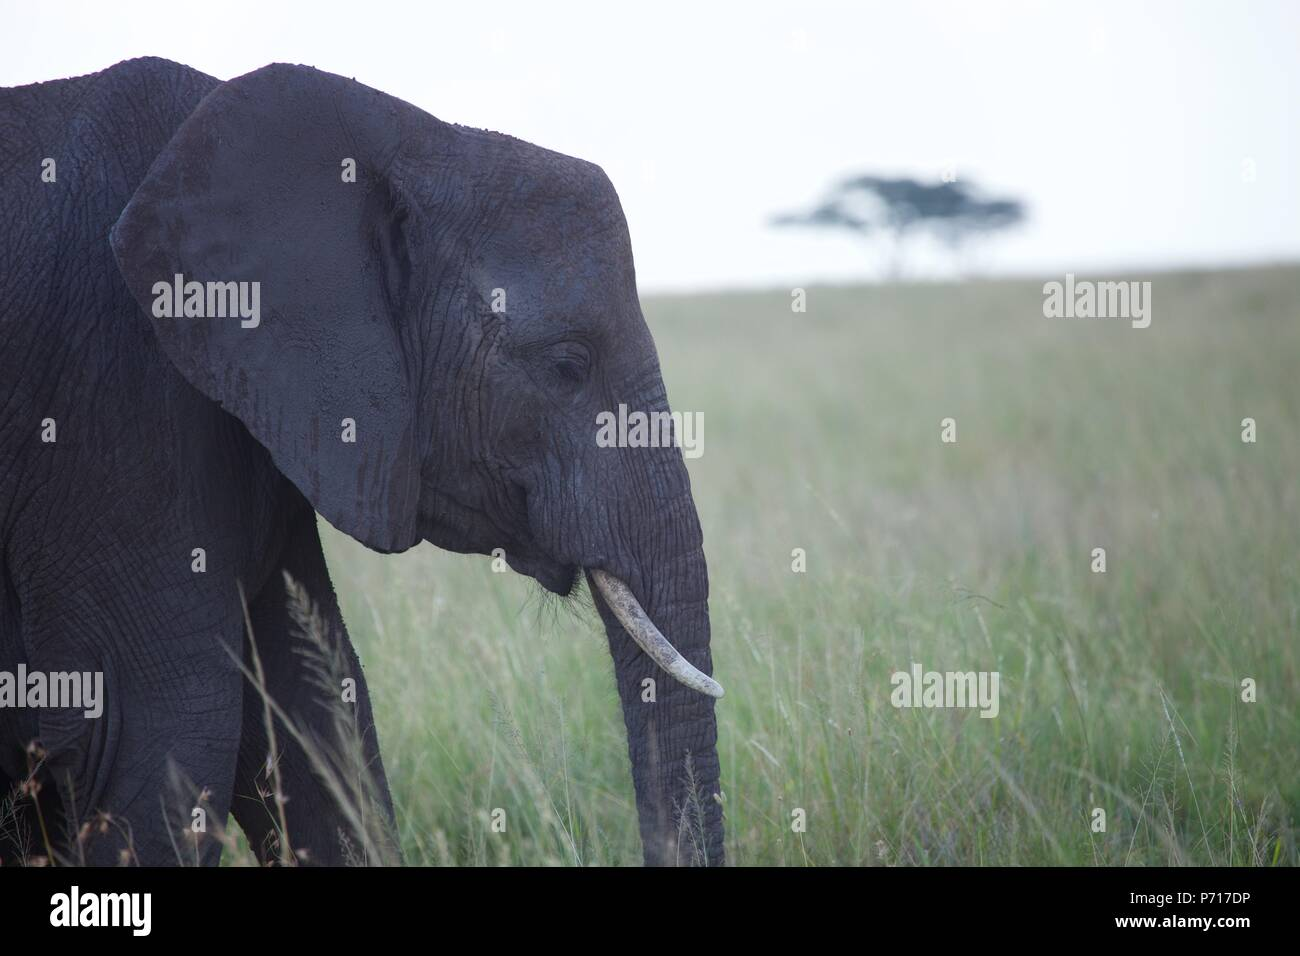 A female African elephant walks through long grass in the fading light of the day in the Serengeti, Tanzania - Stock Image